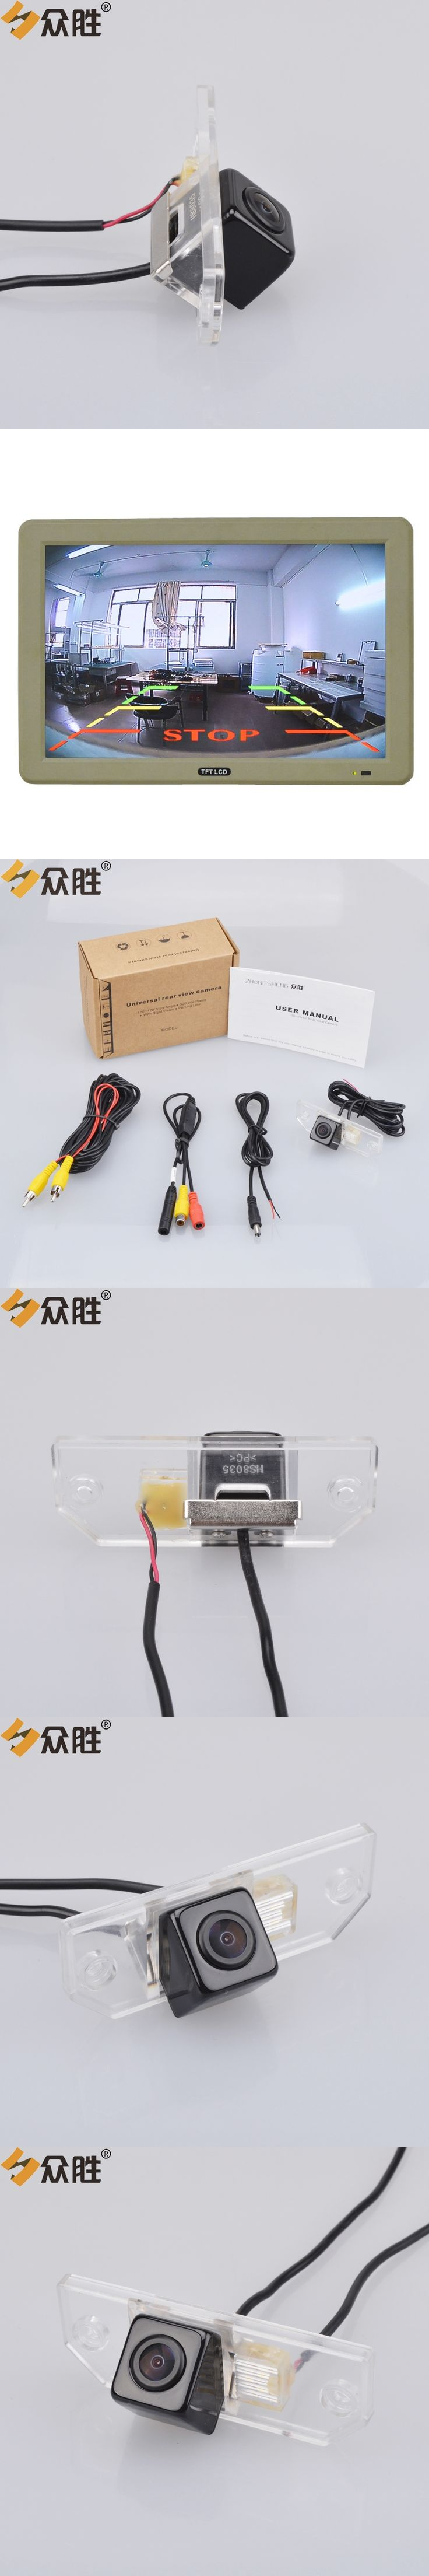 Car Rear View Camera for Ford Focus Sedan C-Max Mondeo Auto Backup Reverse Parking Assistance Rearview Camera Waterproof 8035